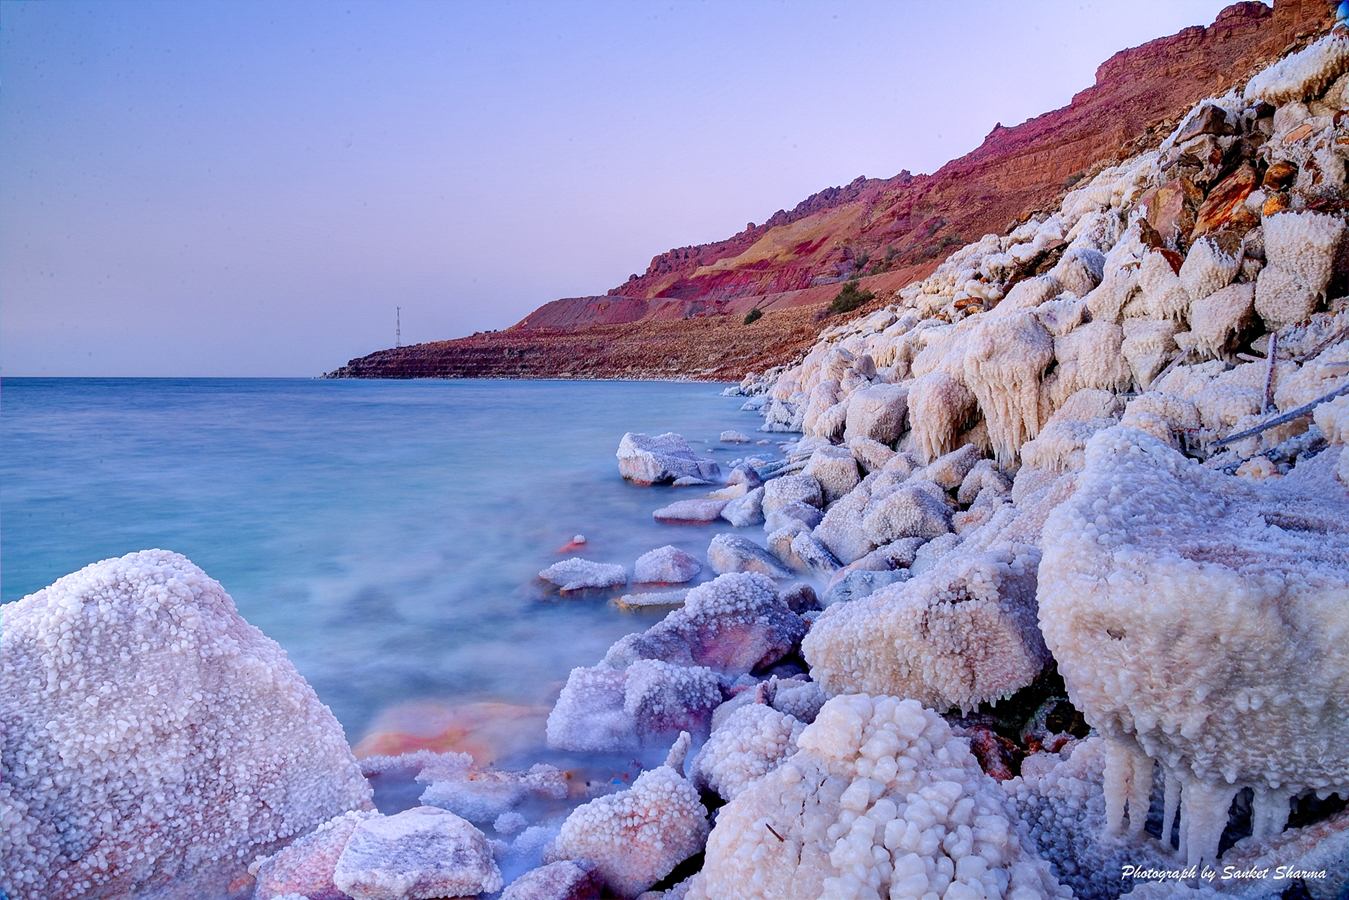 Sunset at Dead Sea, Jordan